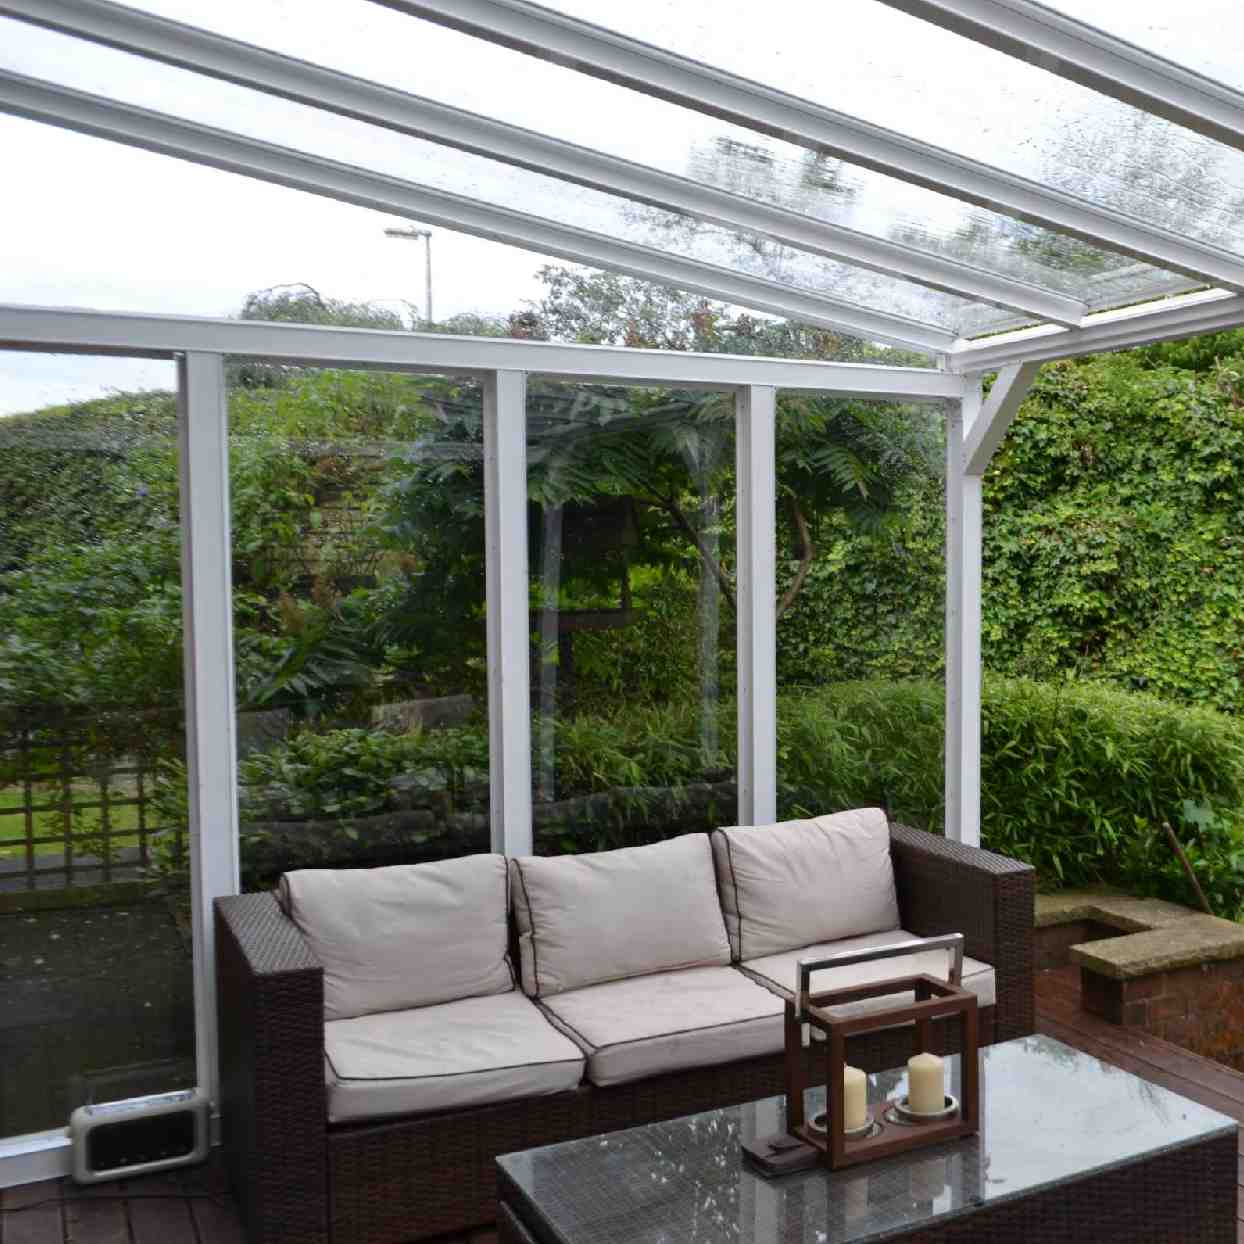 Buy Omega Verandah with 6mm Glass Clear Plate Polycarbonate Glazing - 9.1m (W) x 1.5m (P), (5) Supporting Posts online today